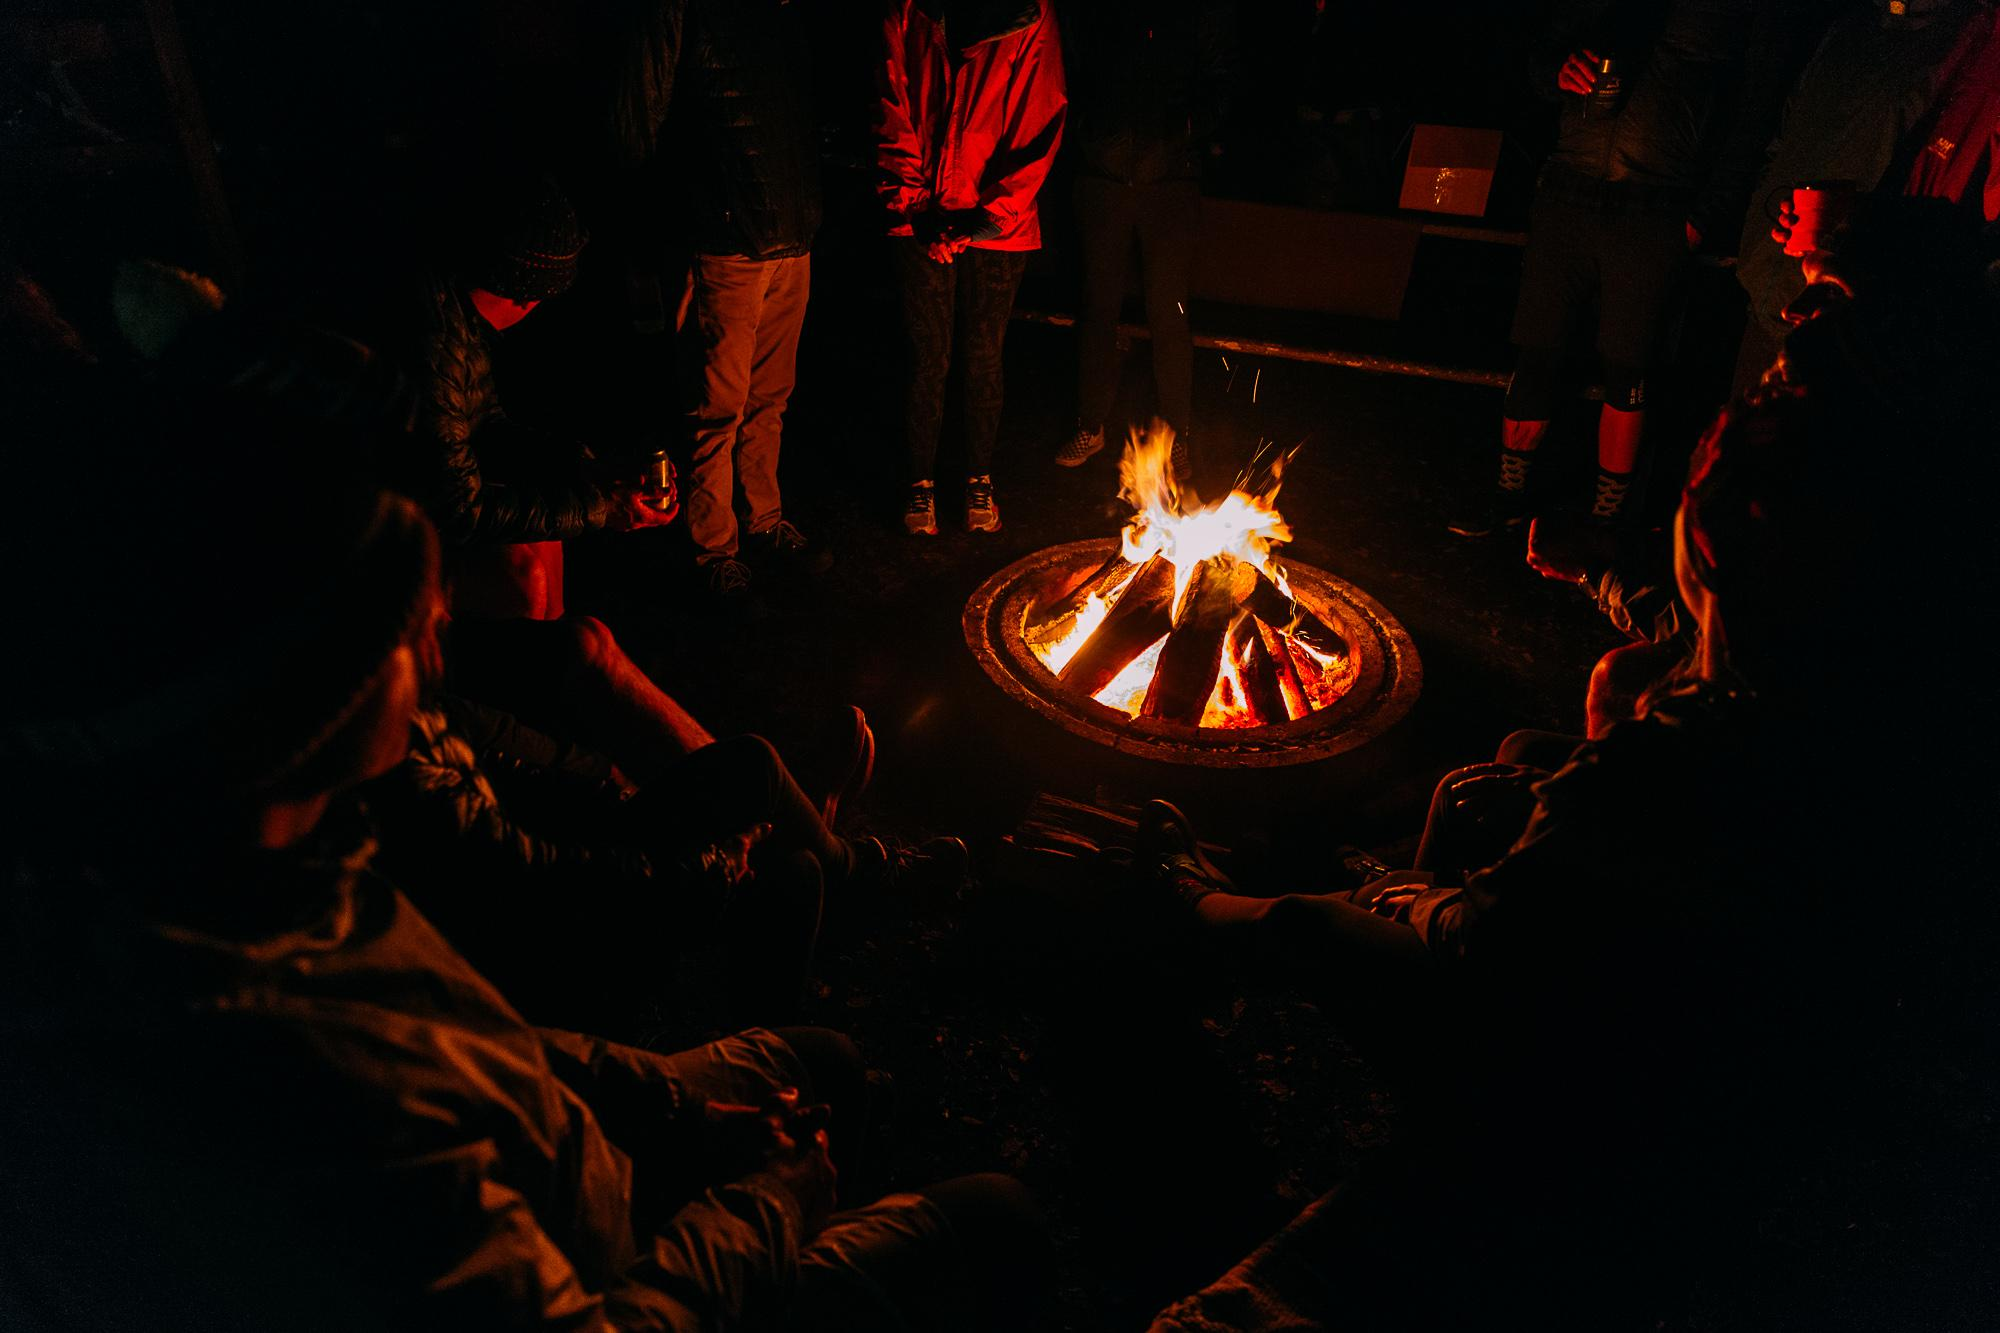 Camp fires, bourbon and tall tales.